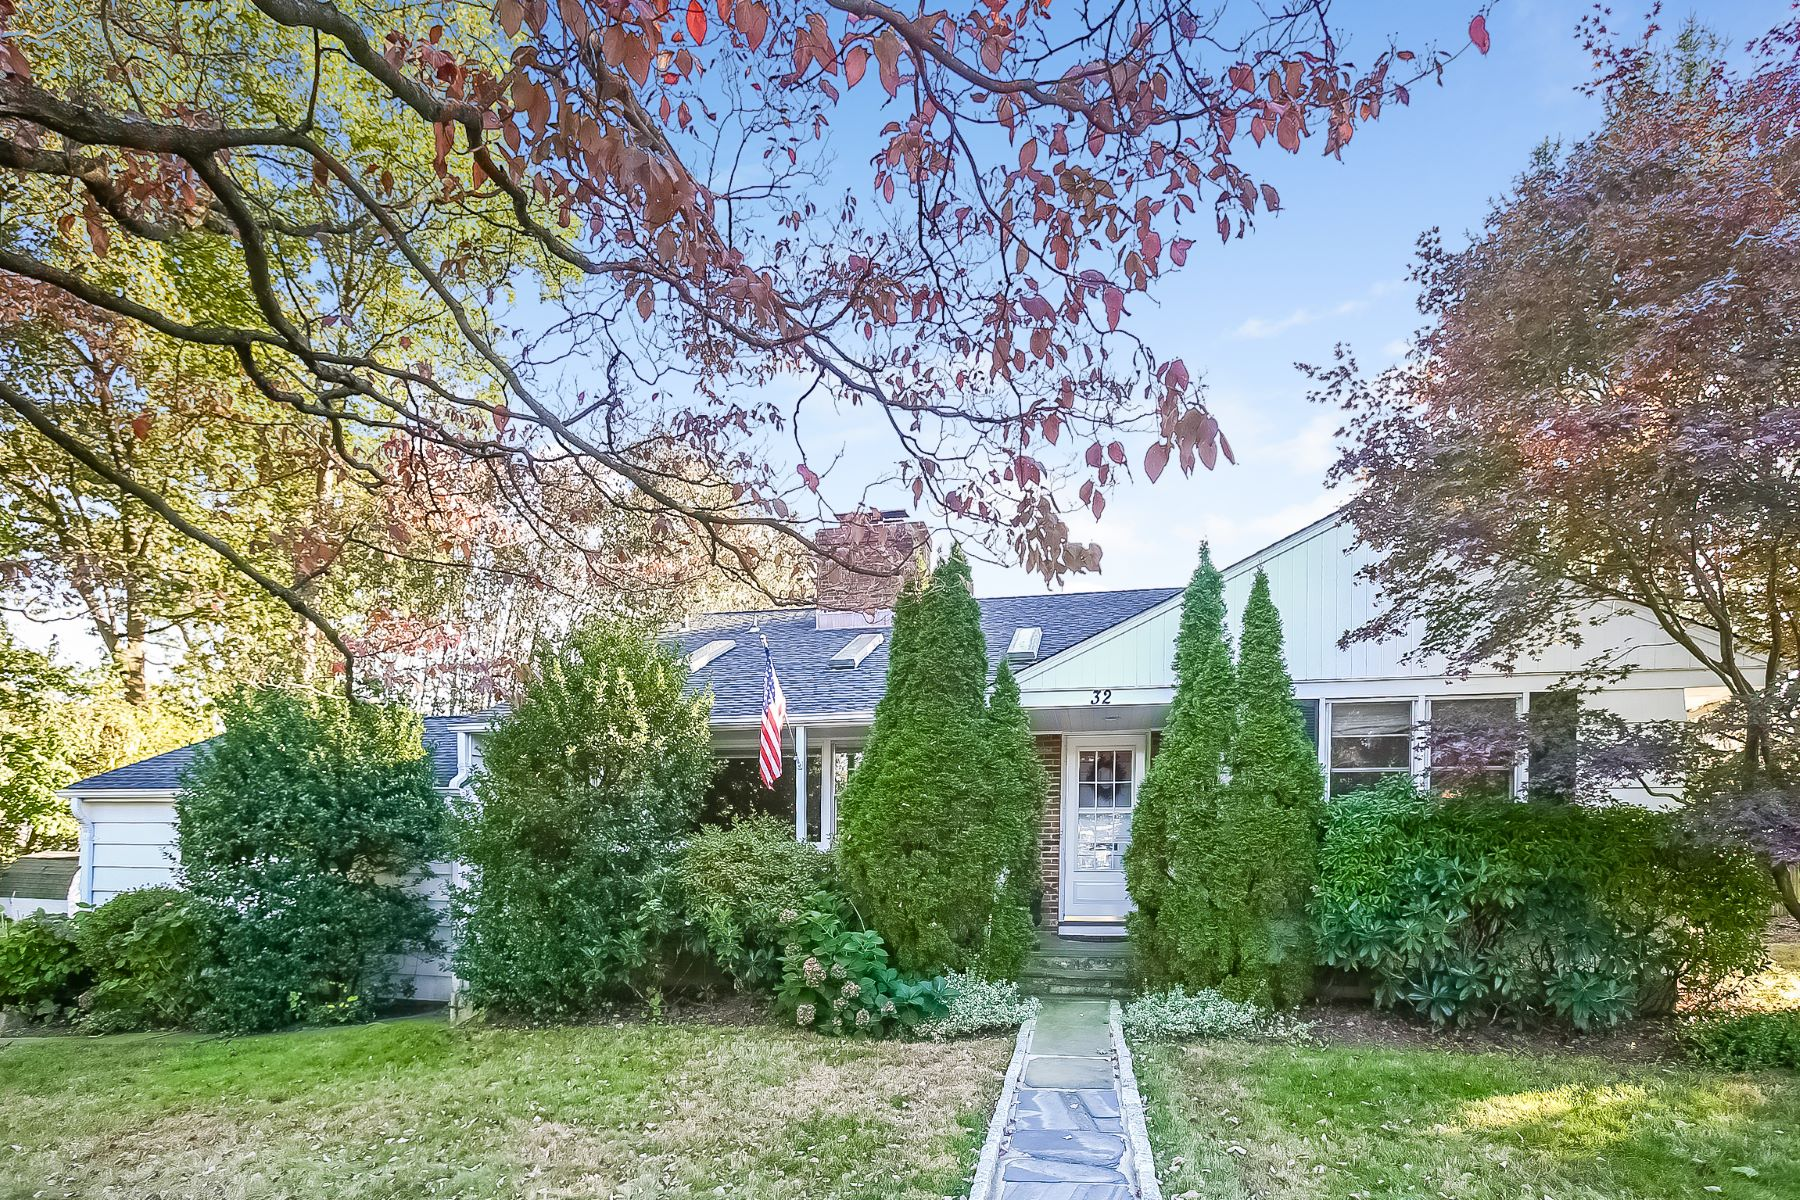 Single Family Home for Sale at Bright, Cozy & Spacious Split Level! 32 Ridge Boulevard, Port Chester, New York, 10573 United States